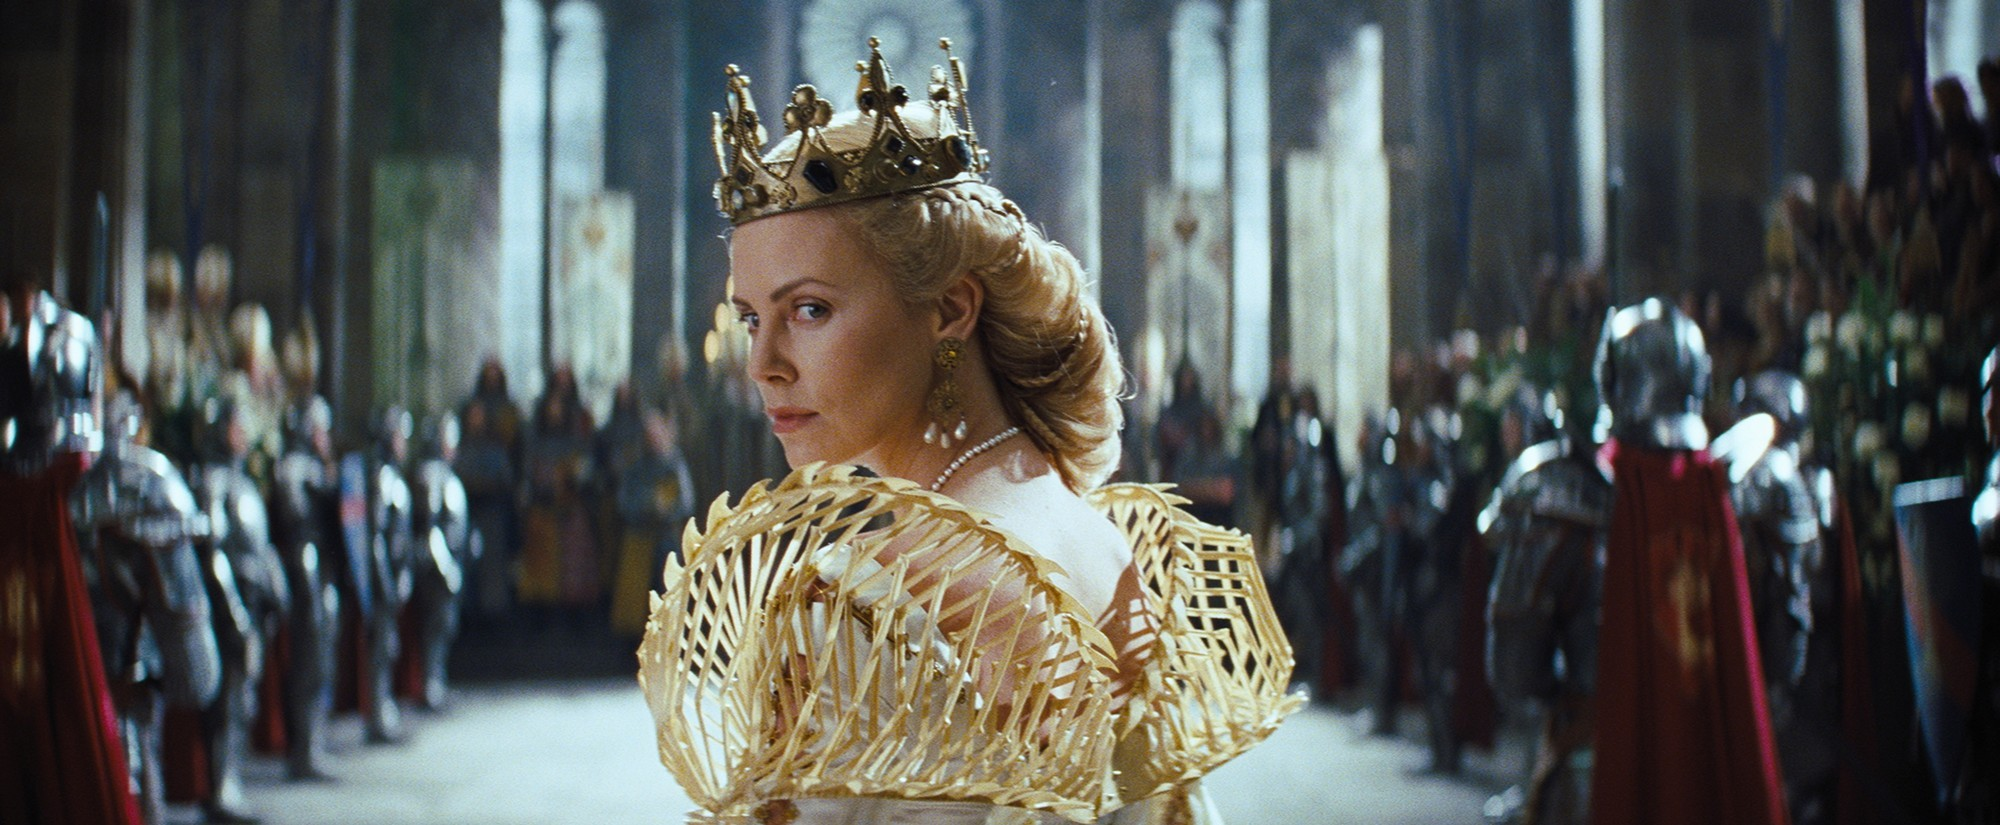 Charlize Theron as Queen Ravenna  Snow White and the Huntsmen picture image